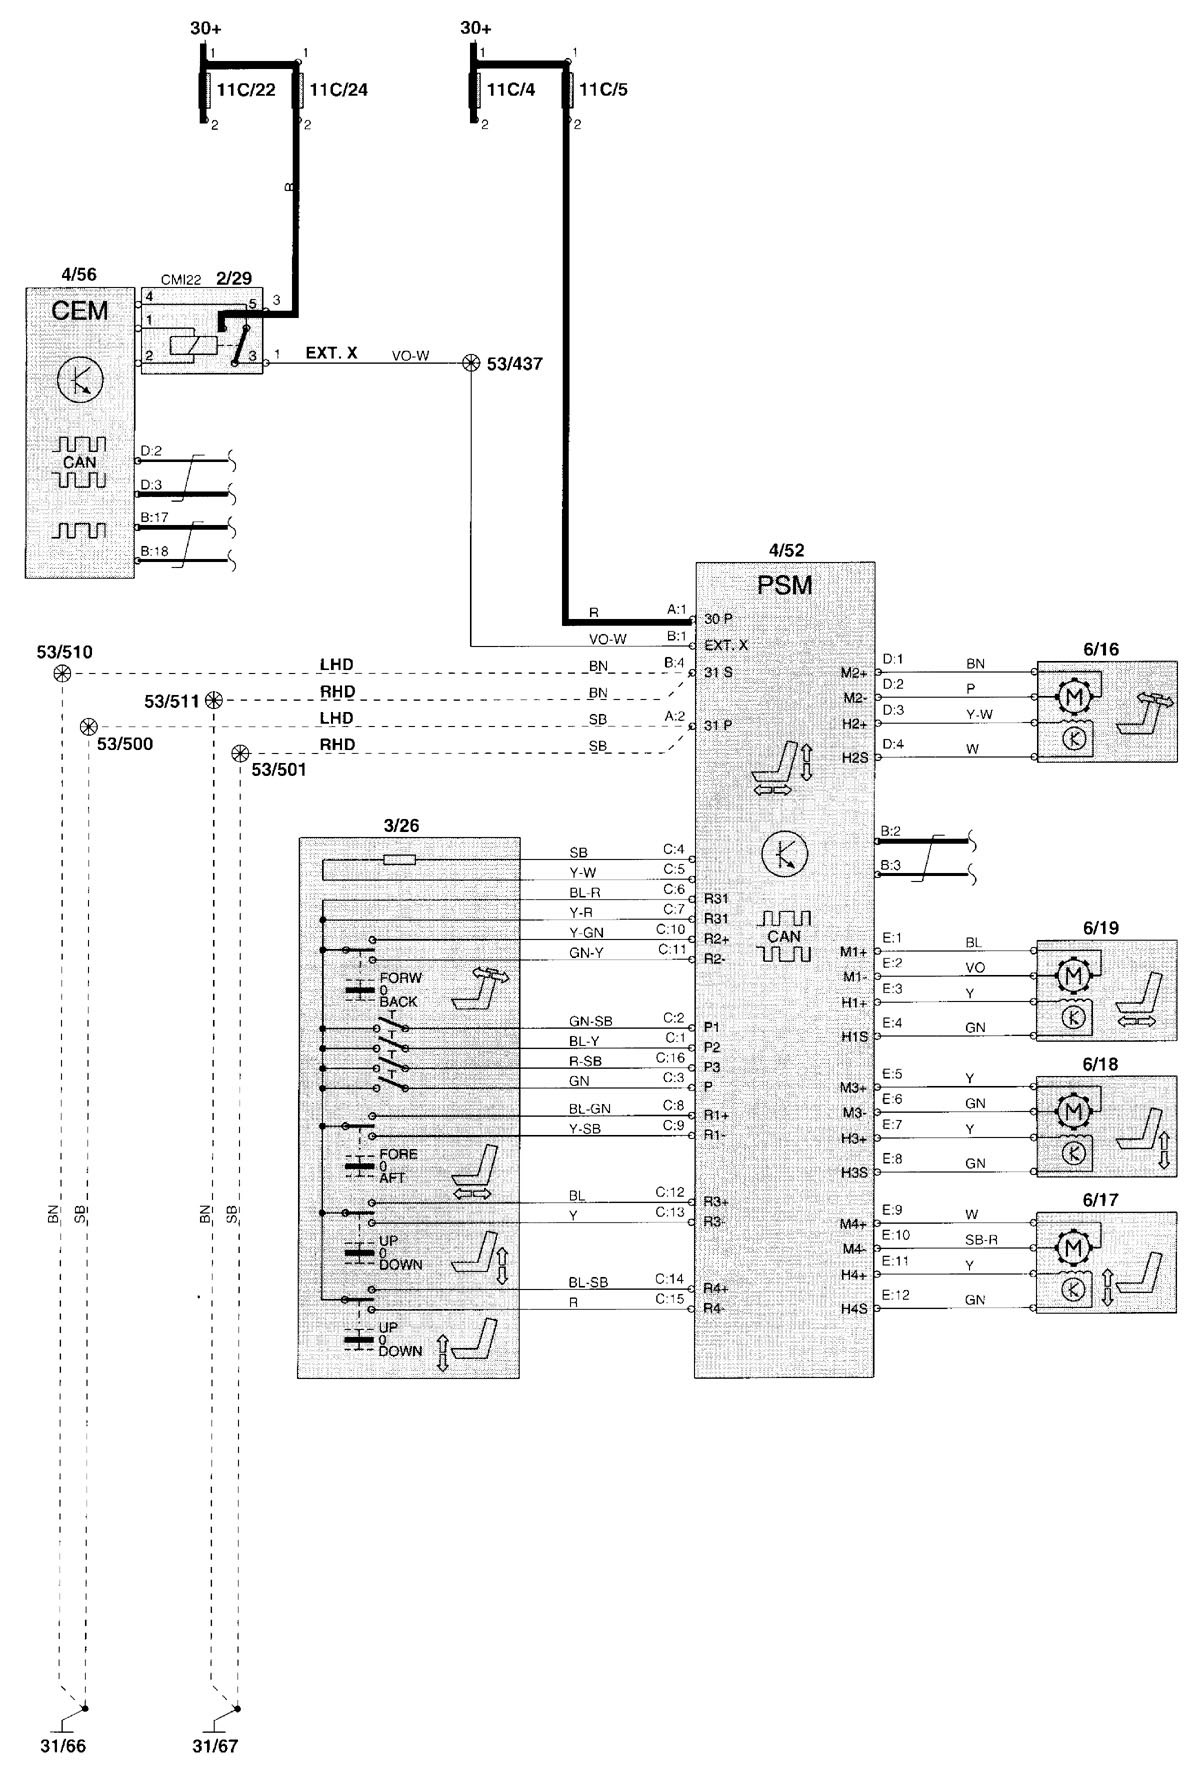 [NRIO_4796]   Volvo V70 Electrical Diagram - 02 Explorer Fuse Diagram for Wiring Diagram  Schematics | Volvo V70 Schematics |  | Wiring Diagram Schematics